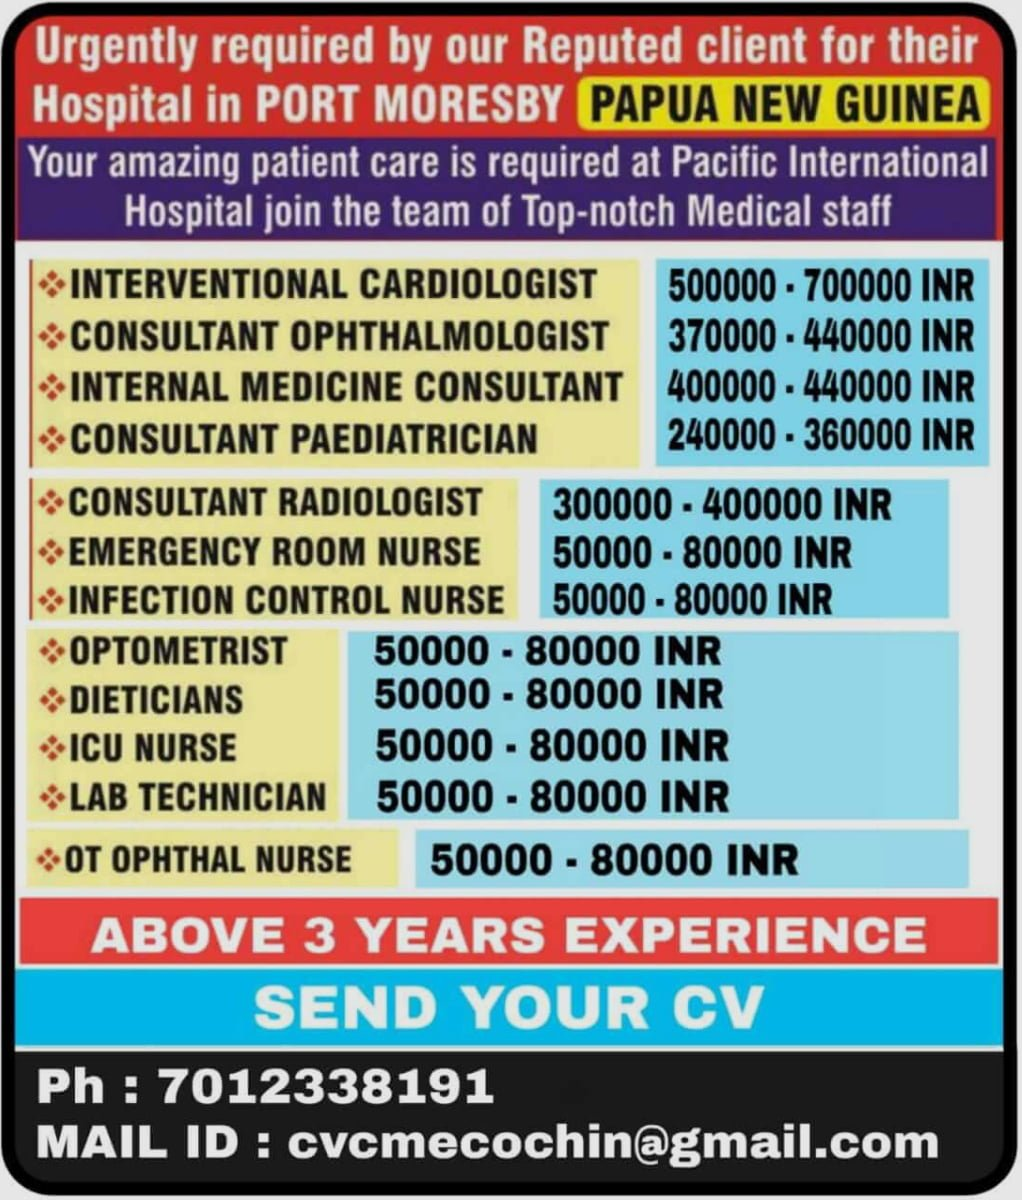 Urgently required by our Reputed client for their Hospital in PORT MORESBY PAPUA NEW GUINEA